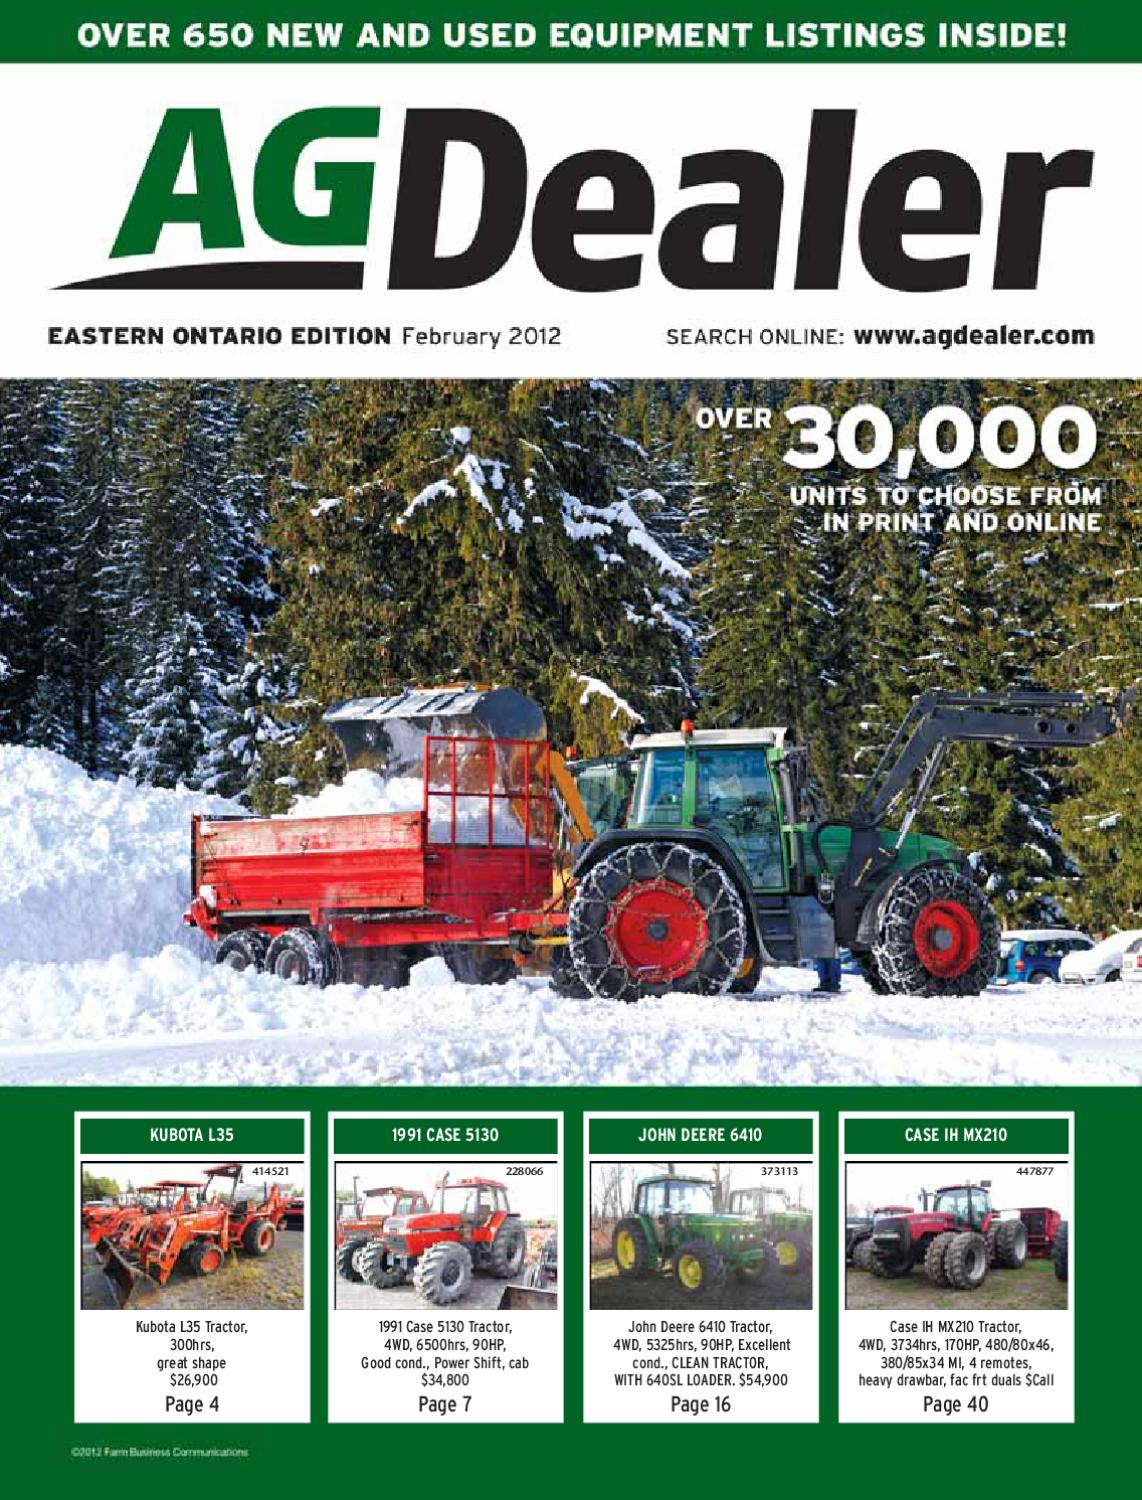 AGDealer Eastern Ontario Edition, February 2012 by Farm Business  Communications - issuu